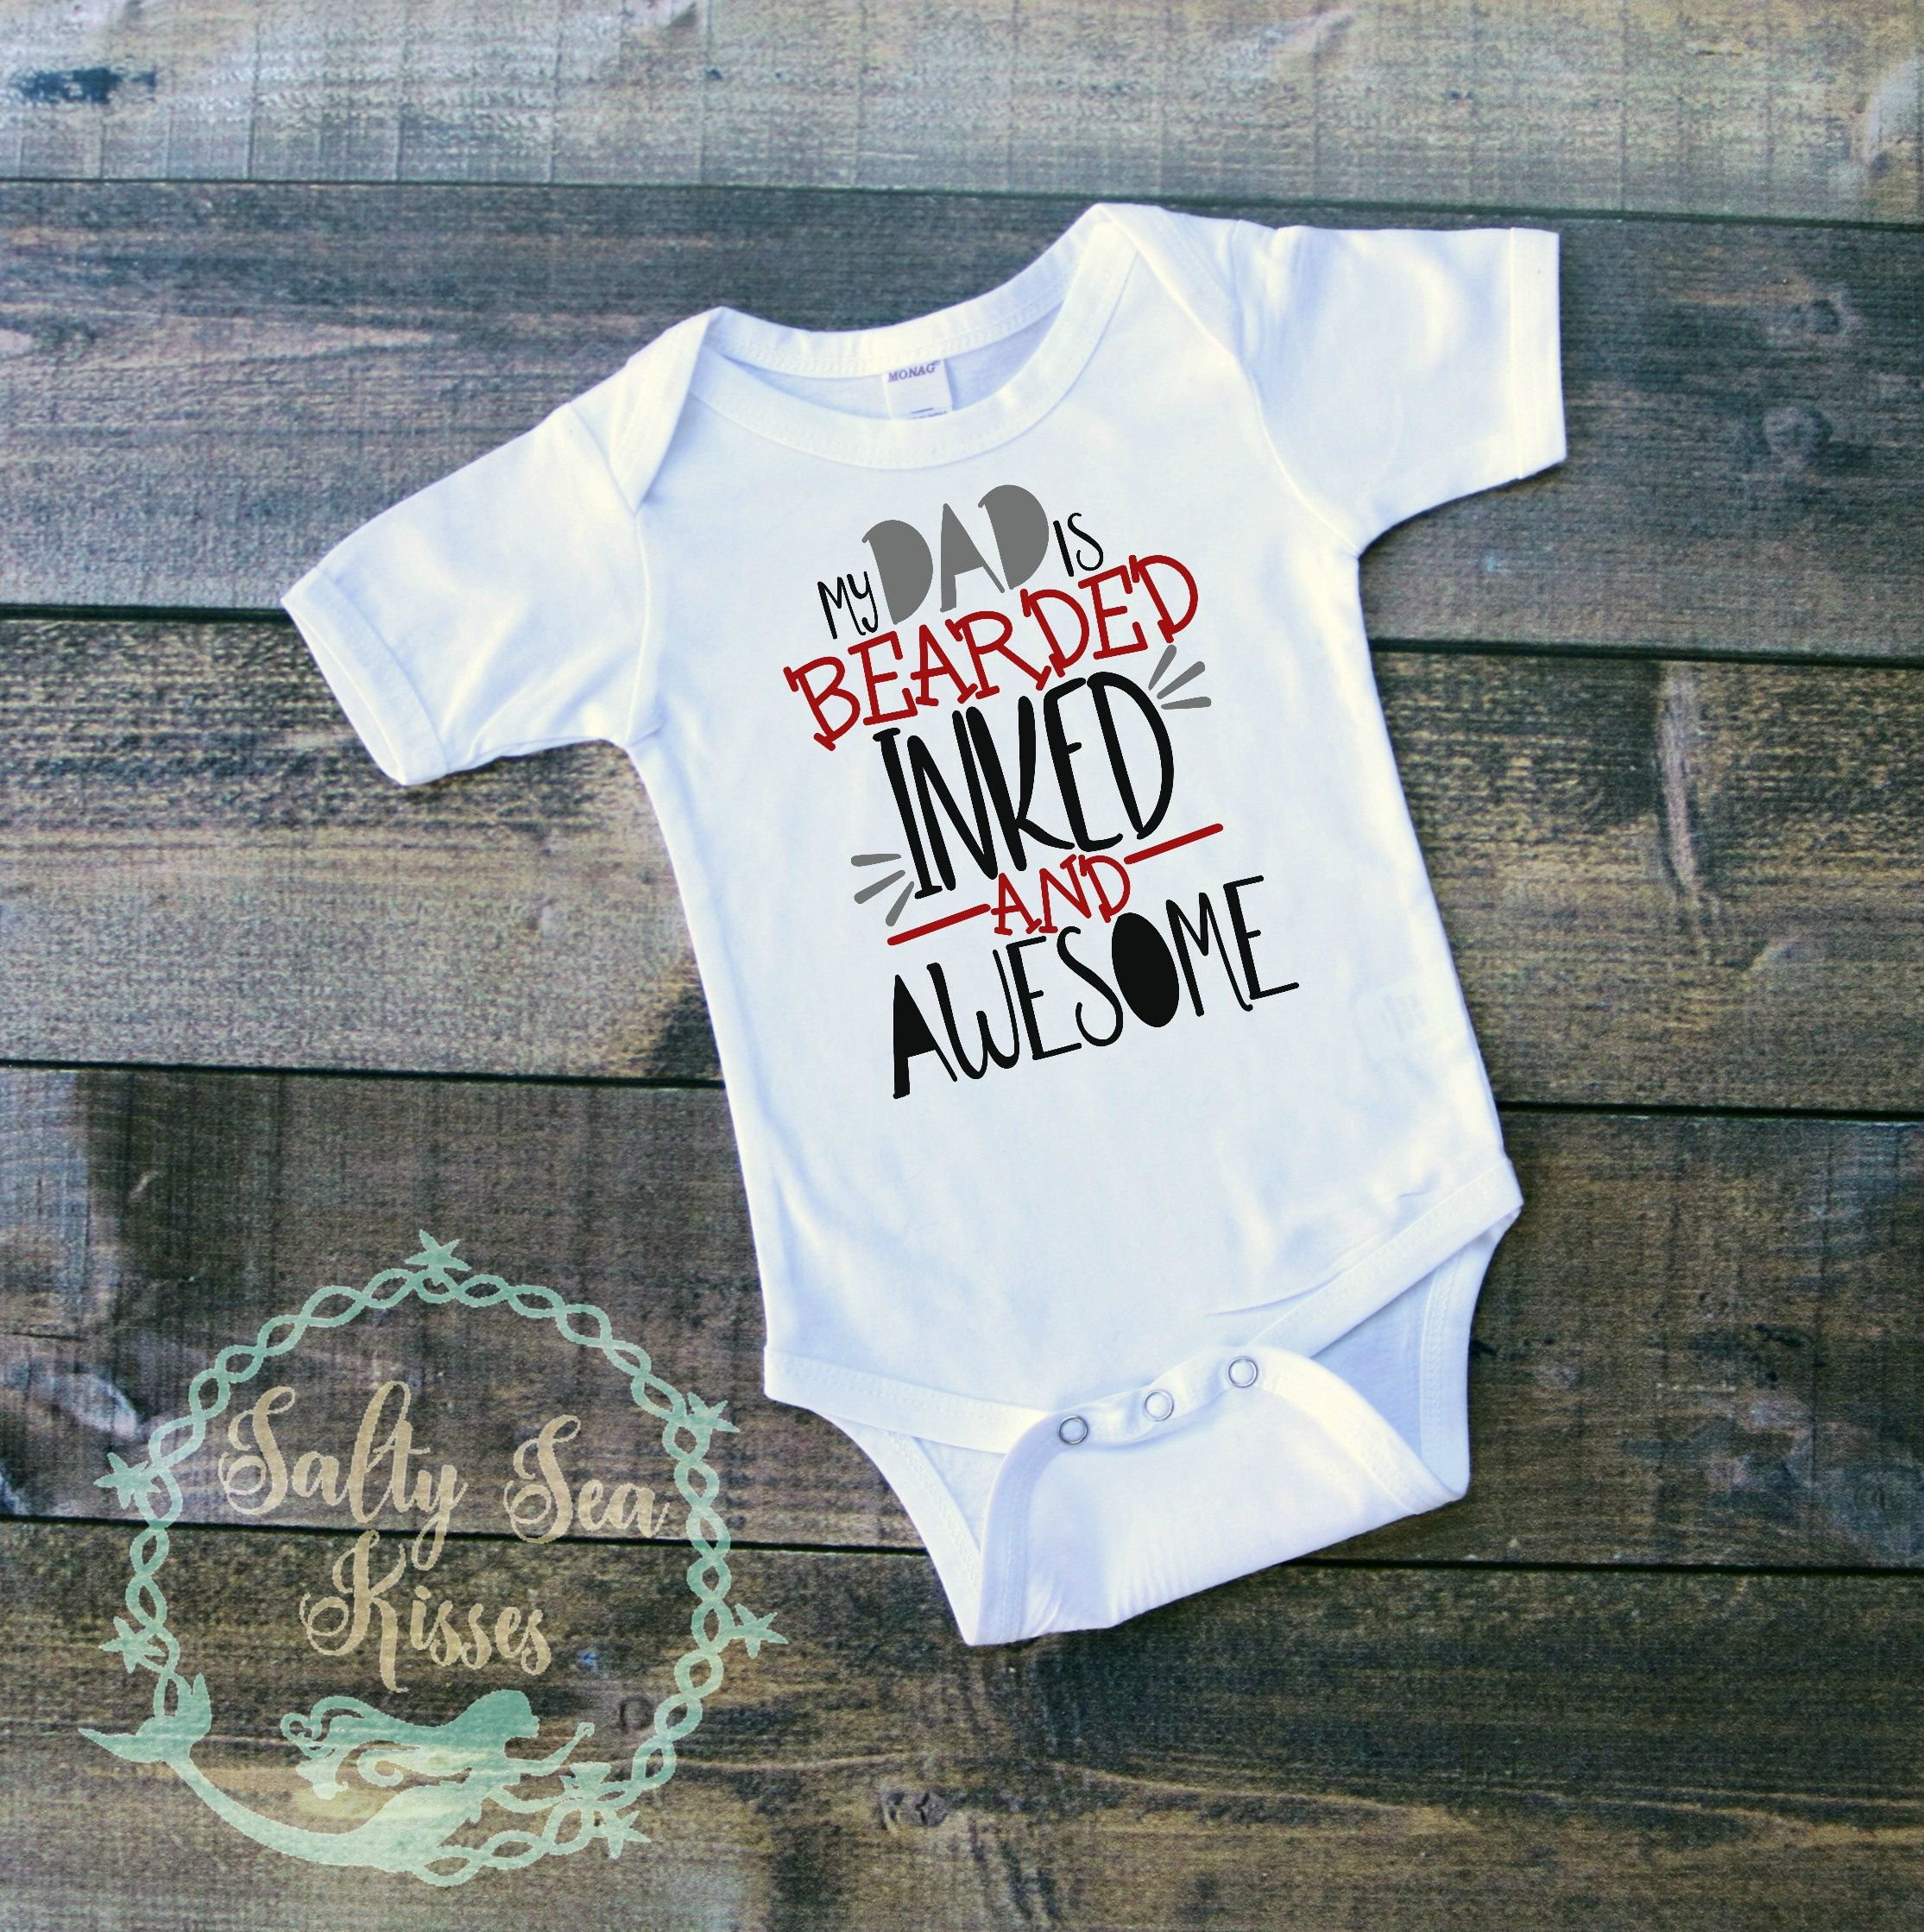 My Dad is Bearded Inked and Awesome Baby Bodysuit Father s Day